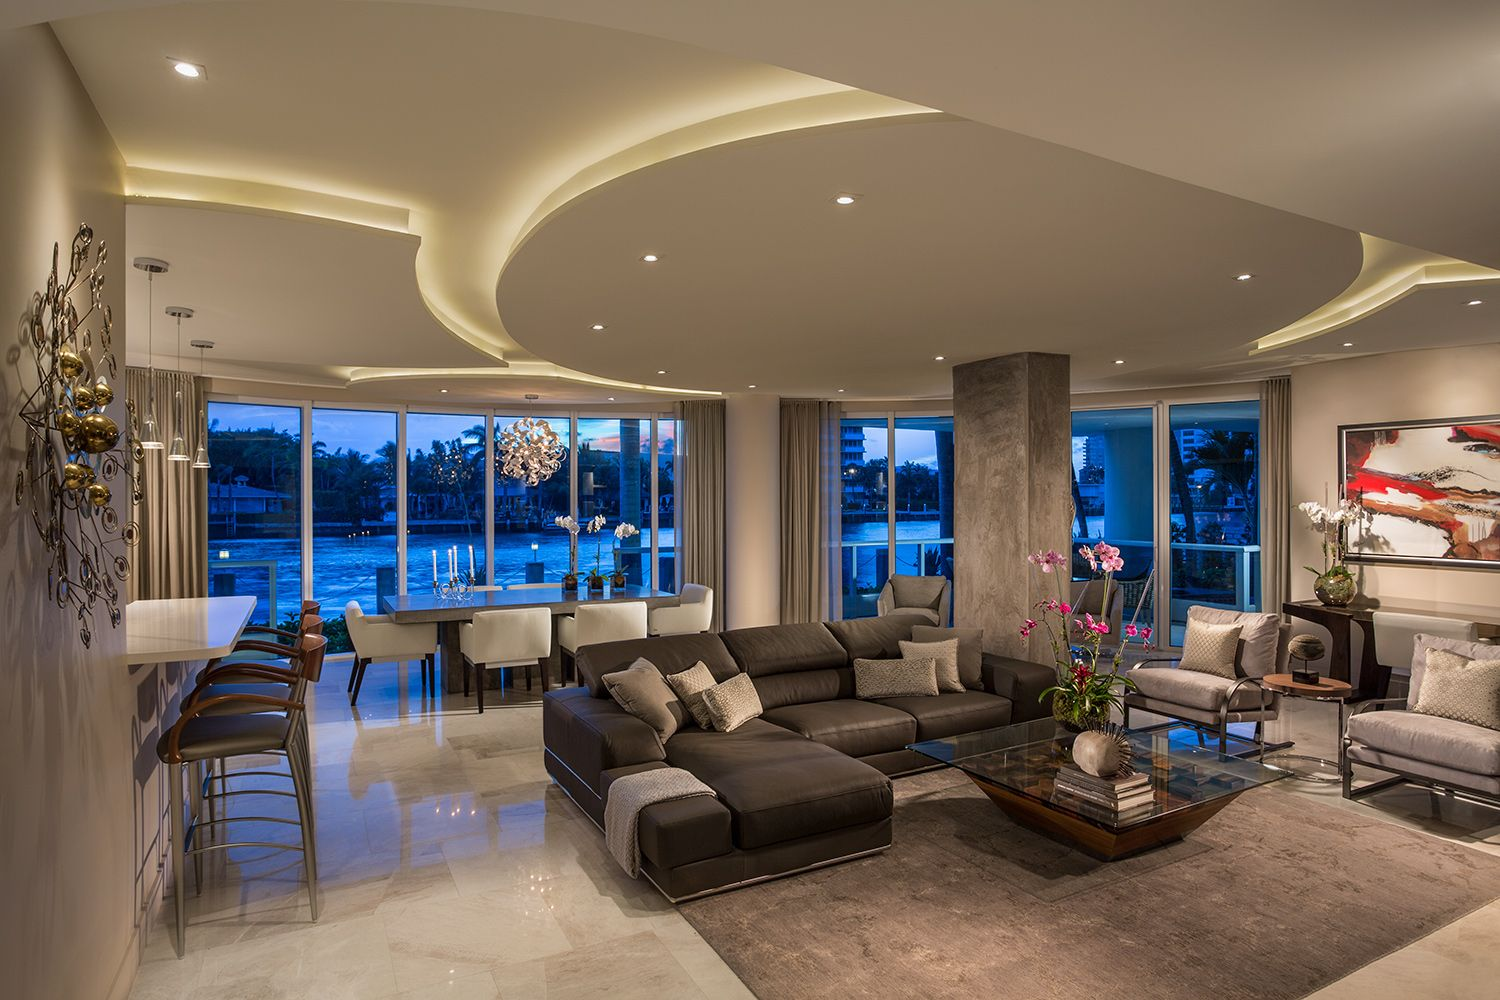 Fort Lauderdale Residence With Images Florida Interior Design Residential Design